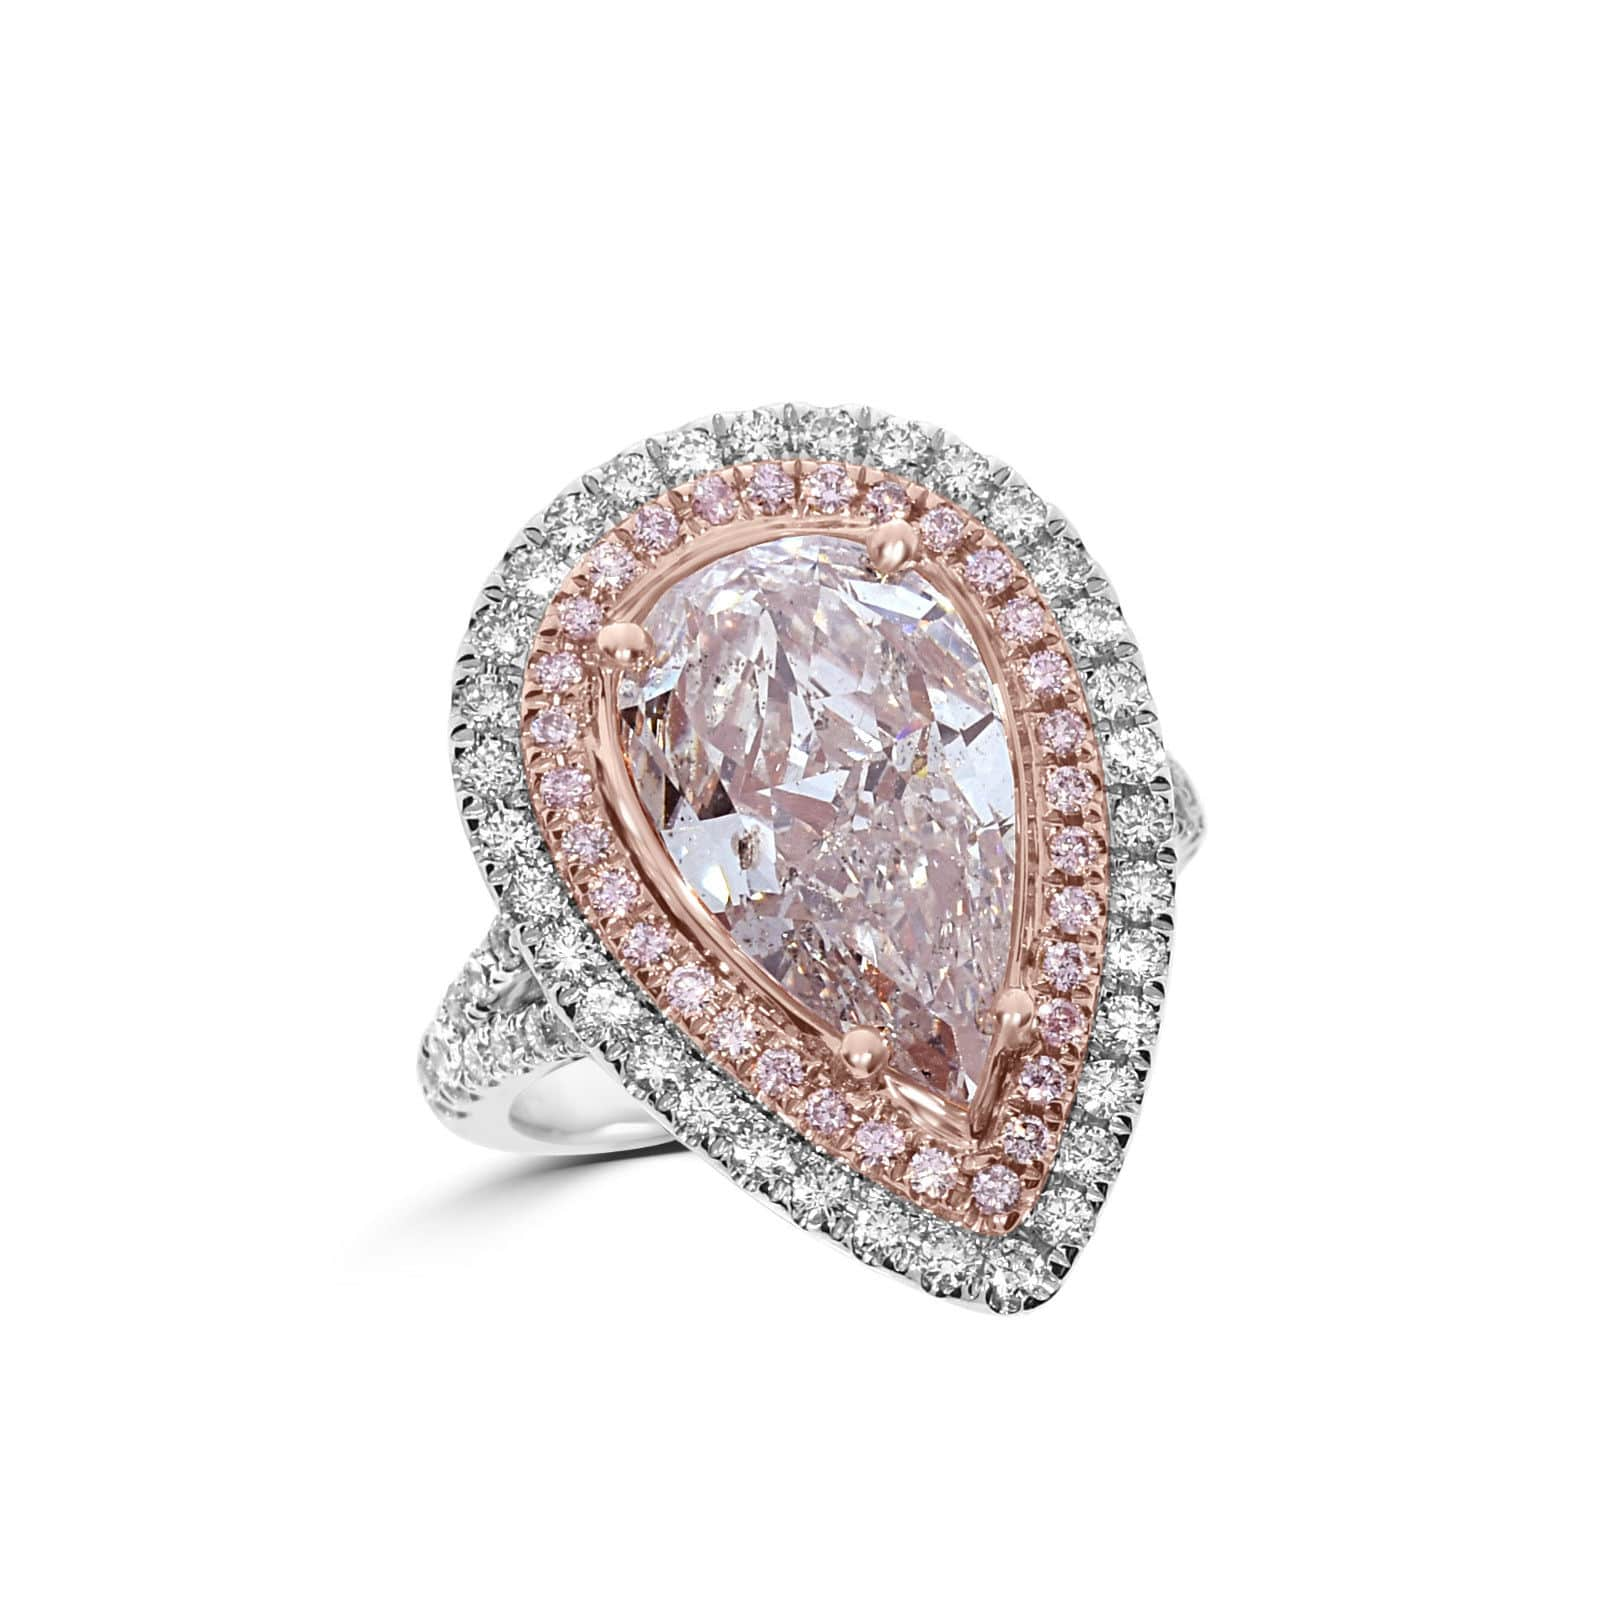 Real GIA 604ct Natural Fancy Very Light Pink Diamonds Engagement Ring 18K Pear 263917387098 - Home